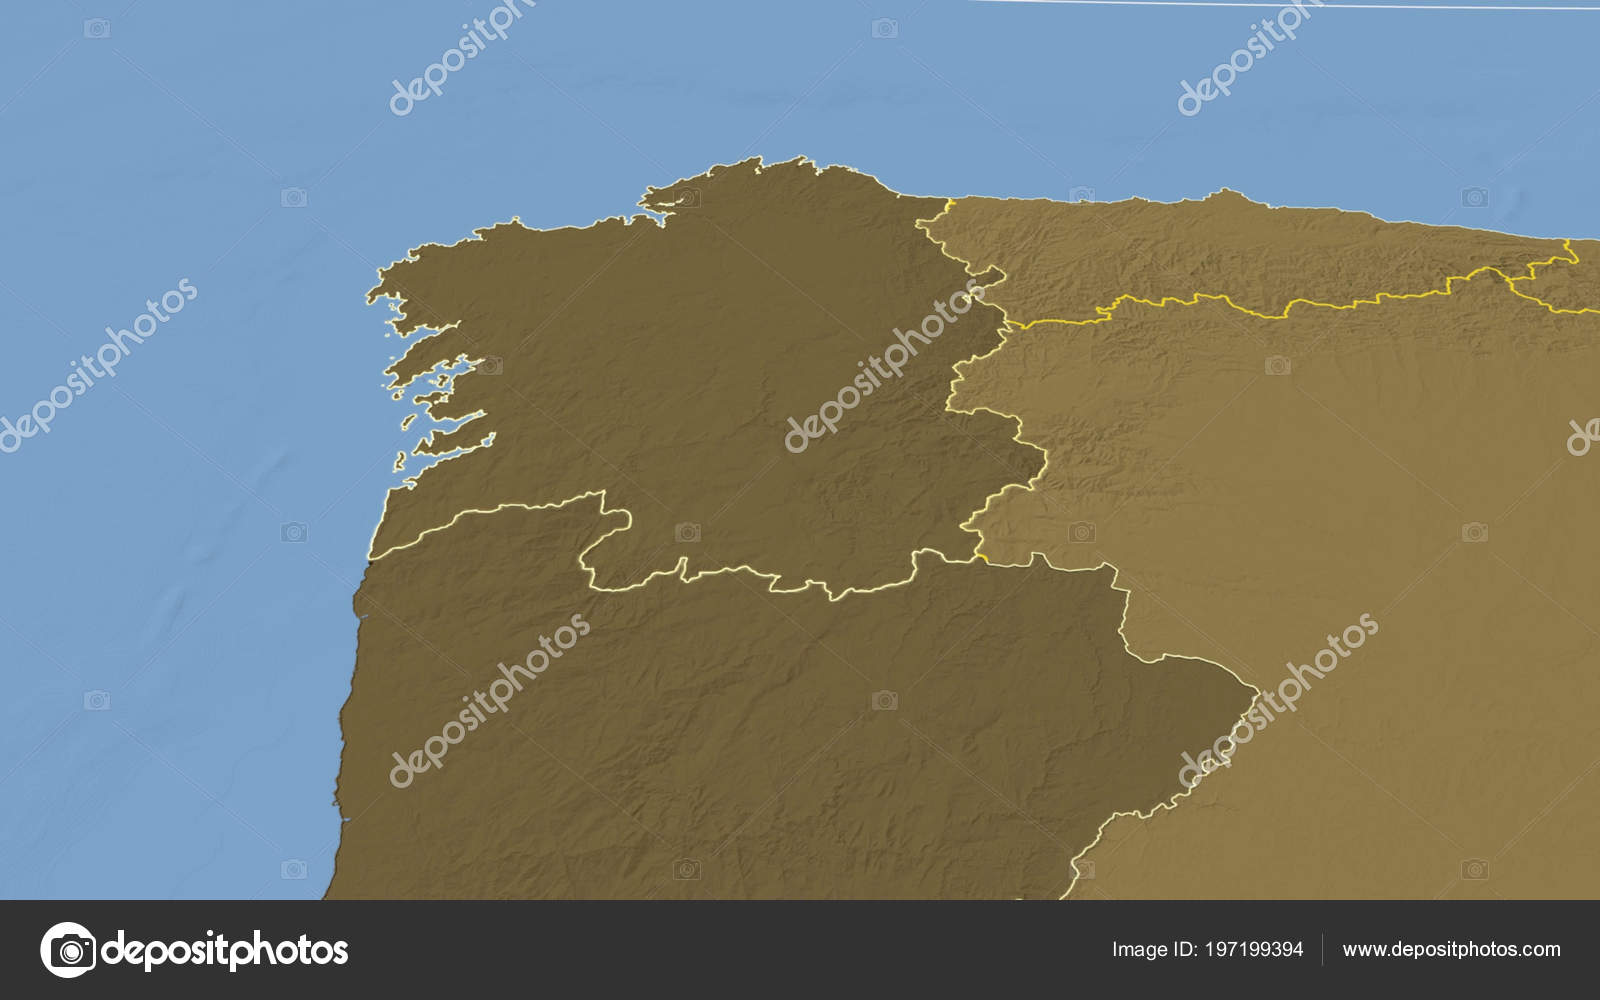 Elevation Map Of Spain.Galicia Region Spain Outlined Bilevel Elevation Map Stock Photo